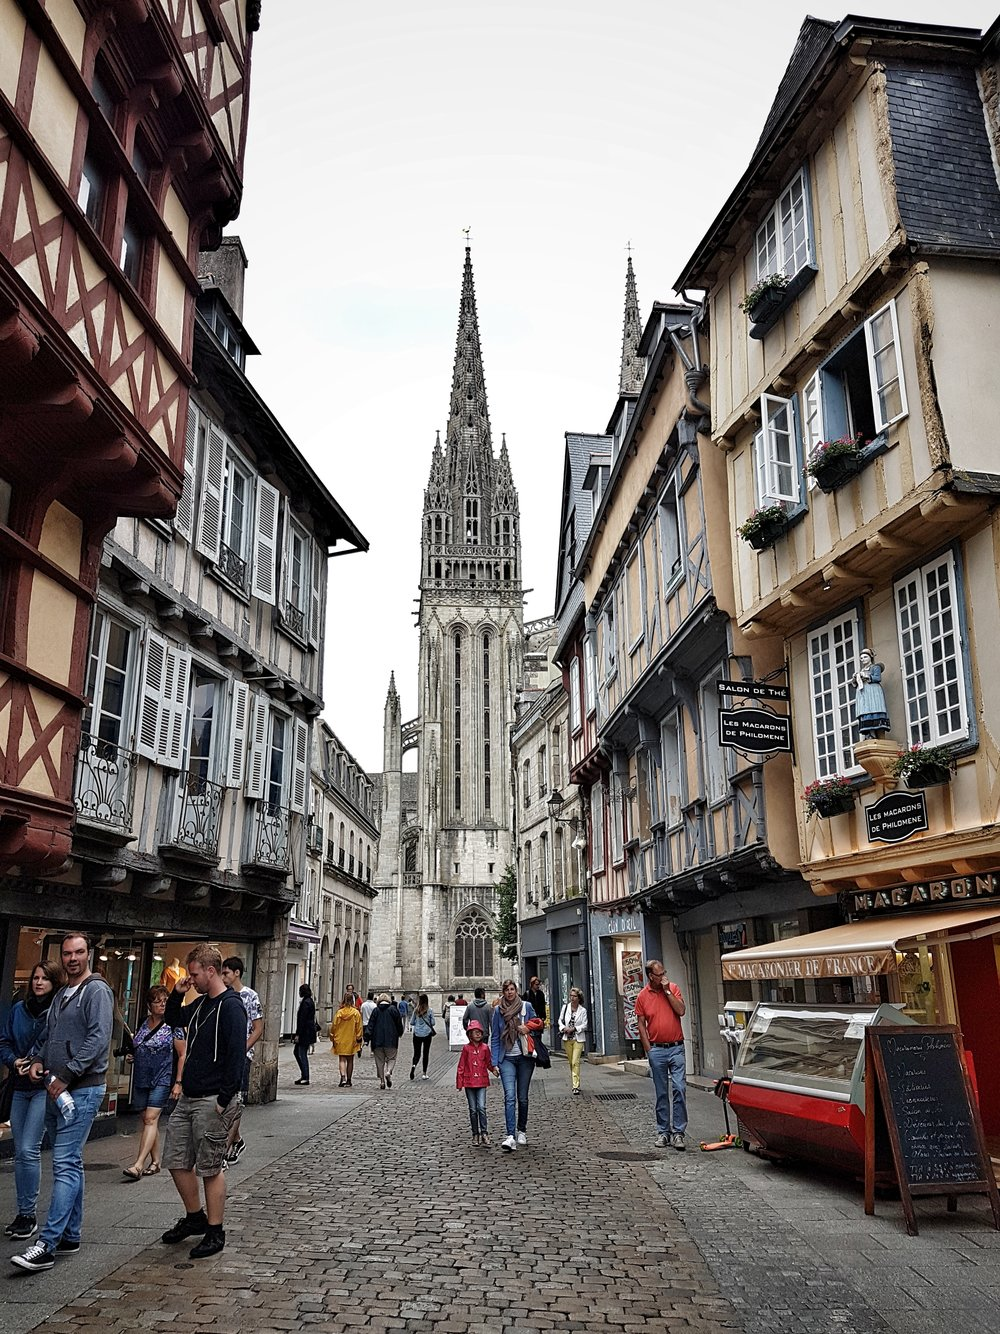 The streets of Quimper and the impressive Cathedral set in the background are well worth a visit. It has a great feel to this historical town.